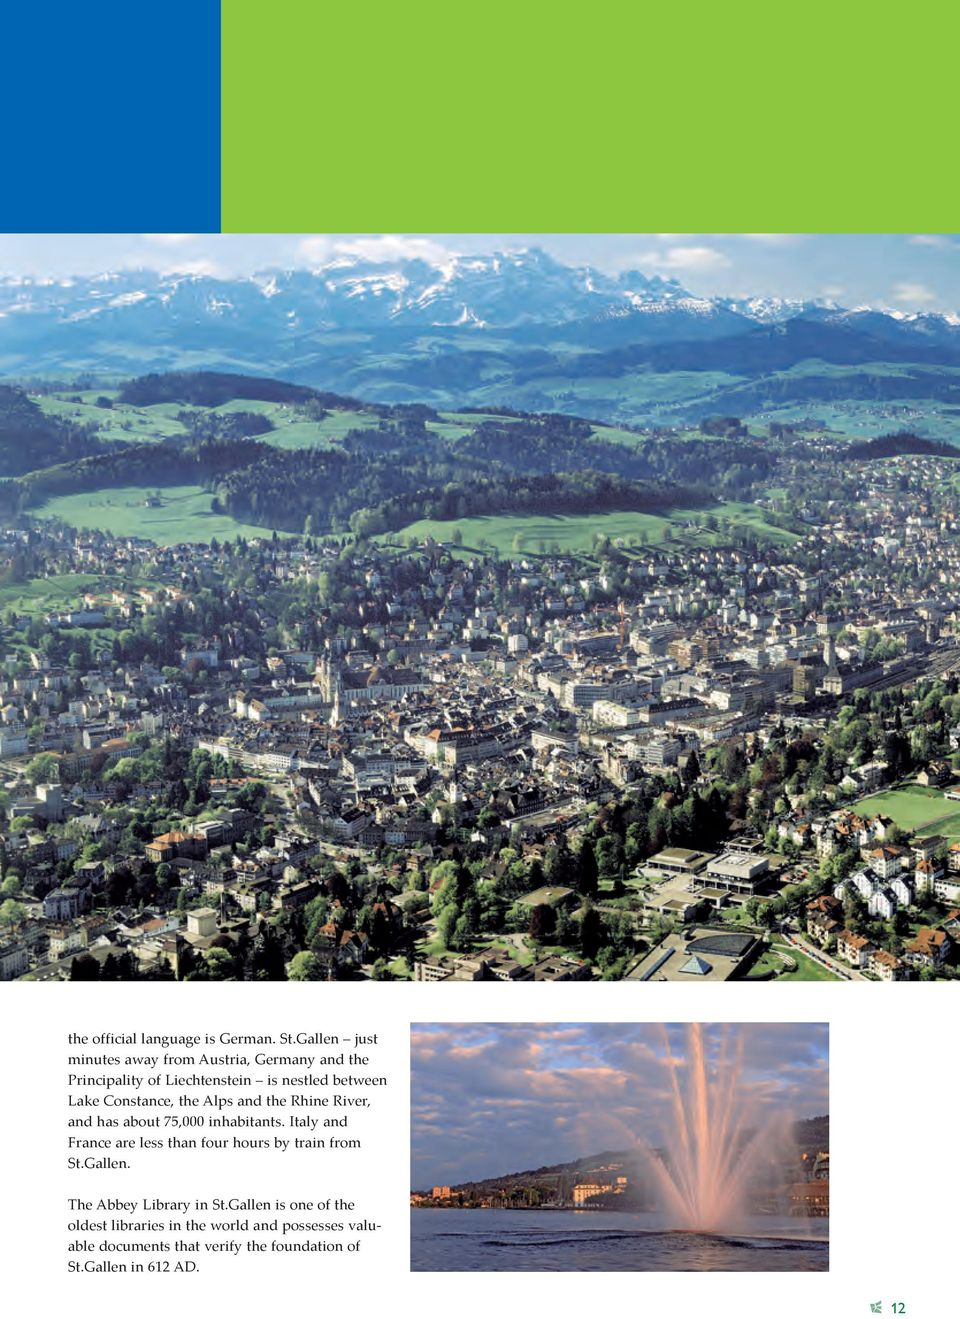 Constance, the Alps and the Rhine River, and has about 75,000 inhabitants.